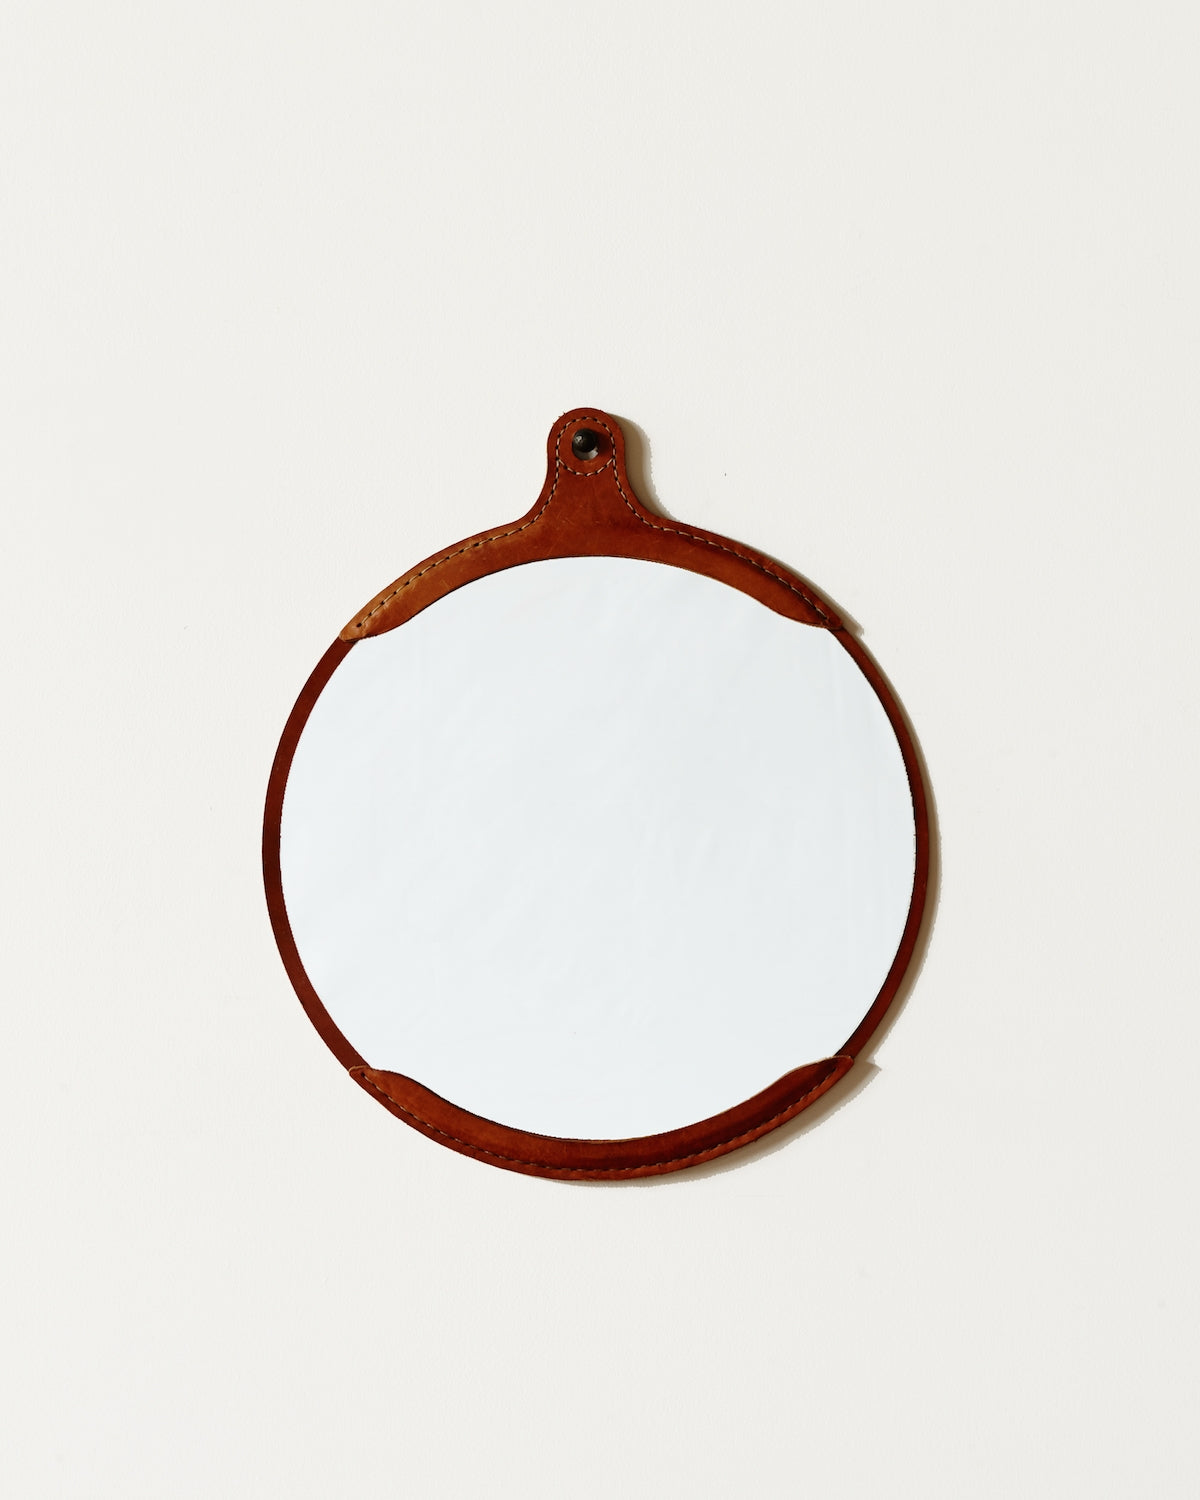 FAIRMOUNT MIRROR - ROUND